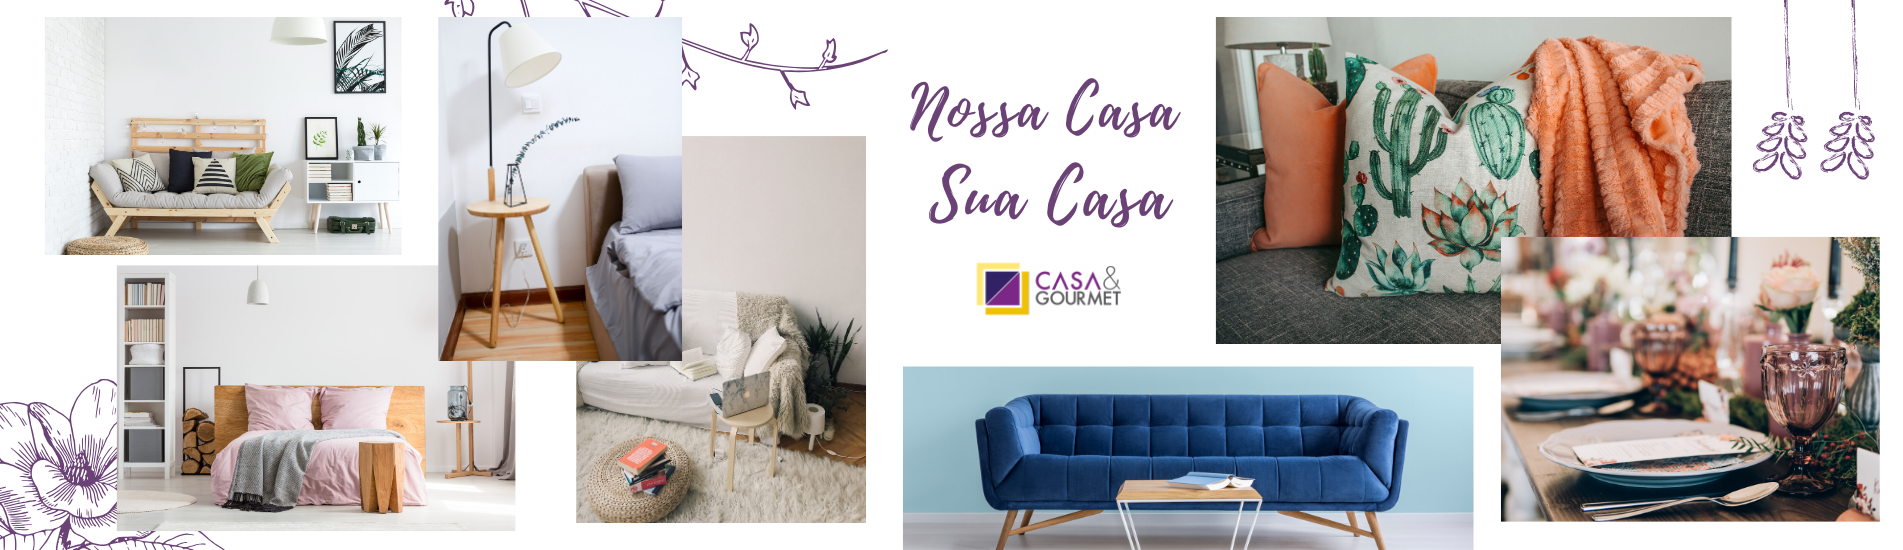 Casa & Gourmet Decor